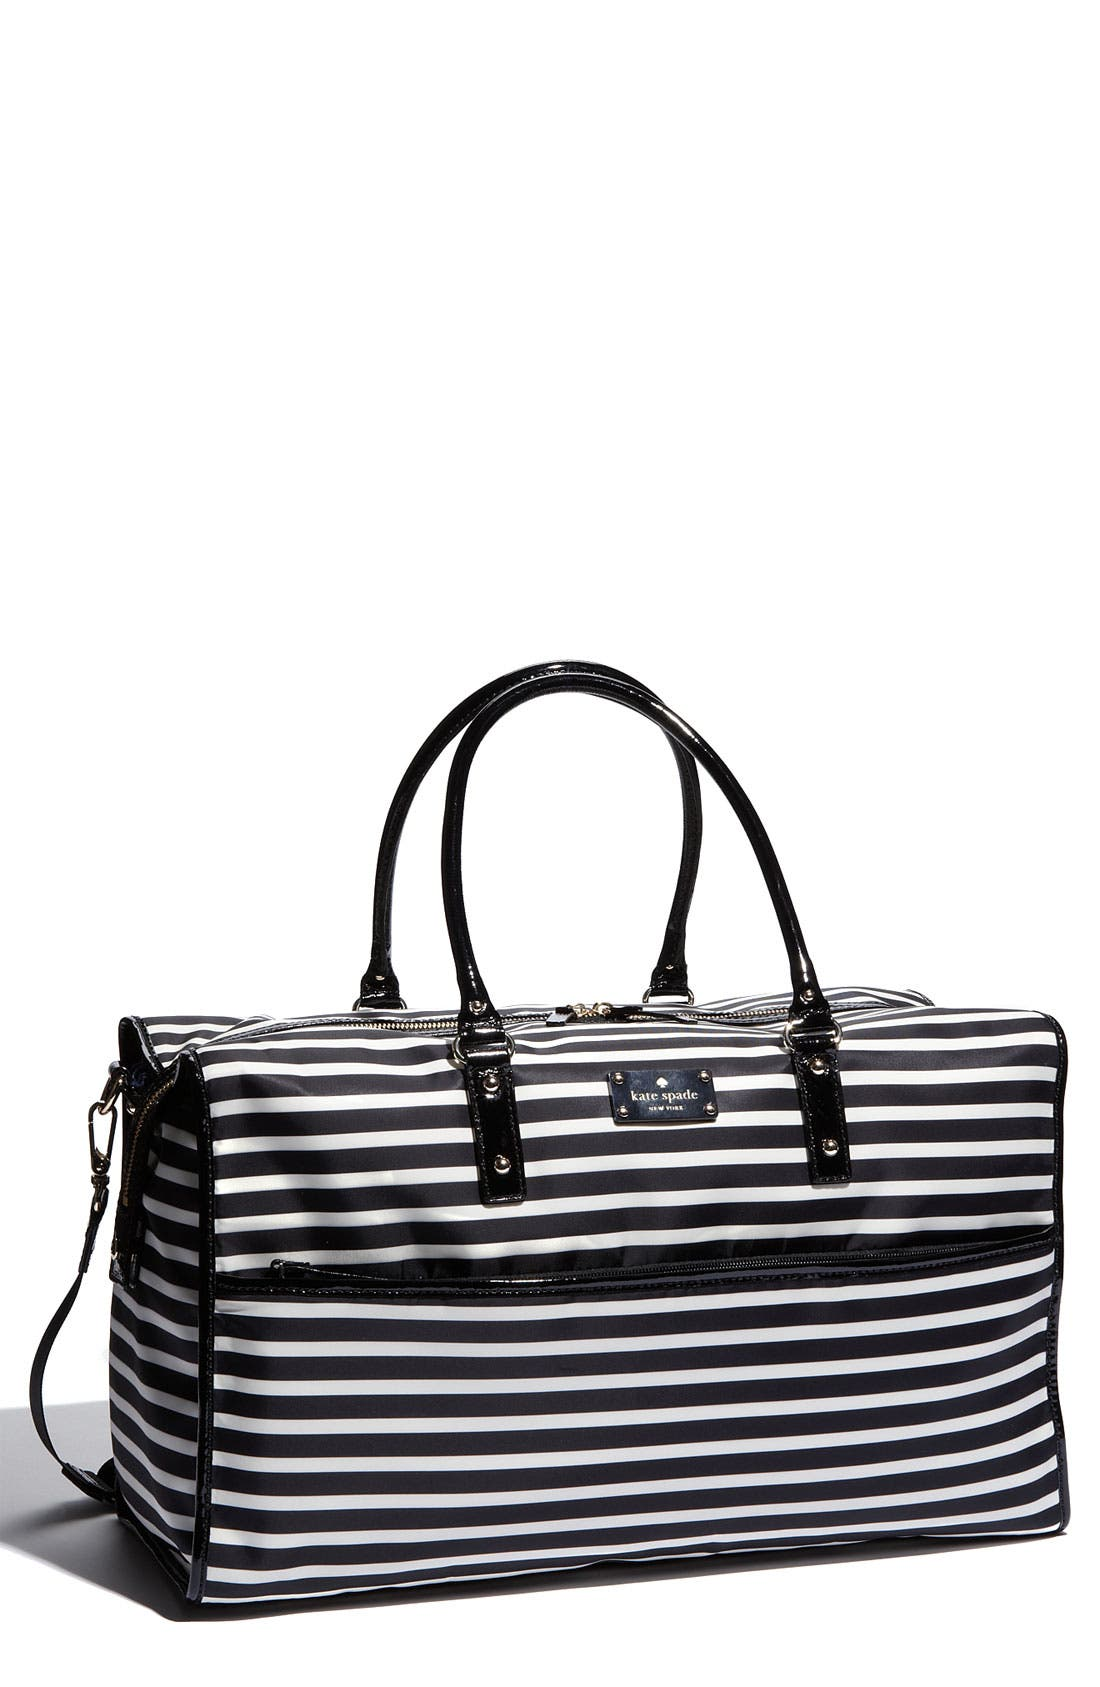 Alternate Image 1 Selected - kate spade new york 'adara' stripe nylon tote